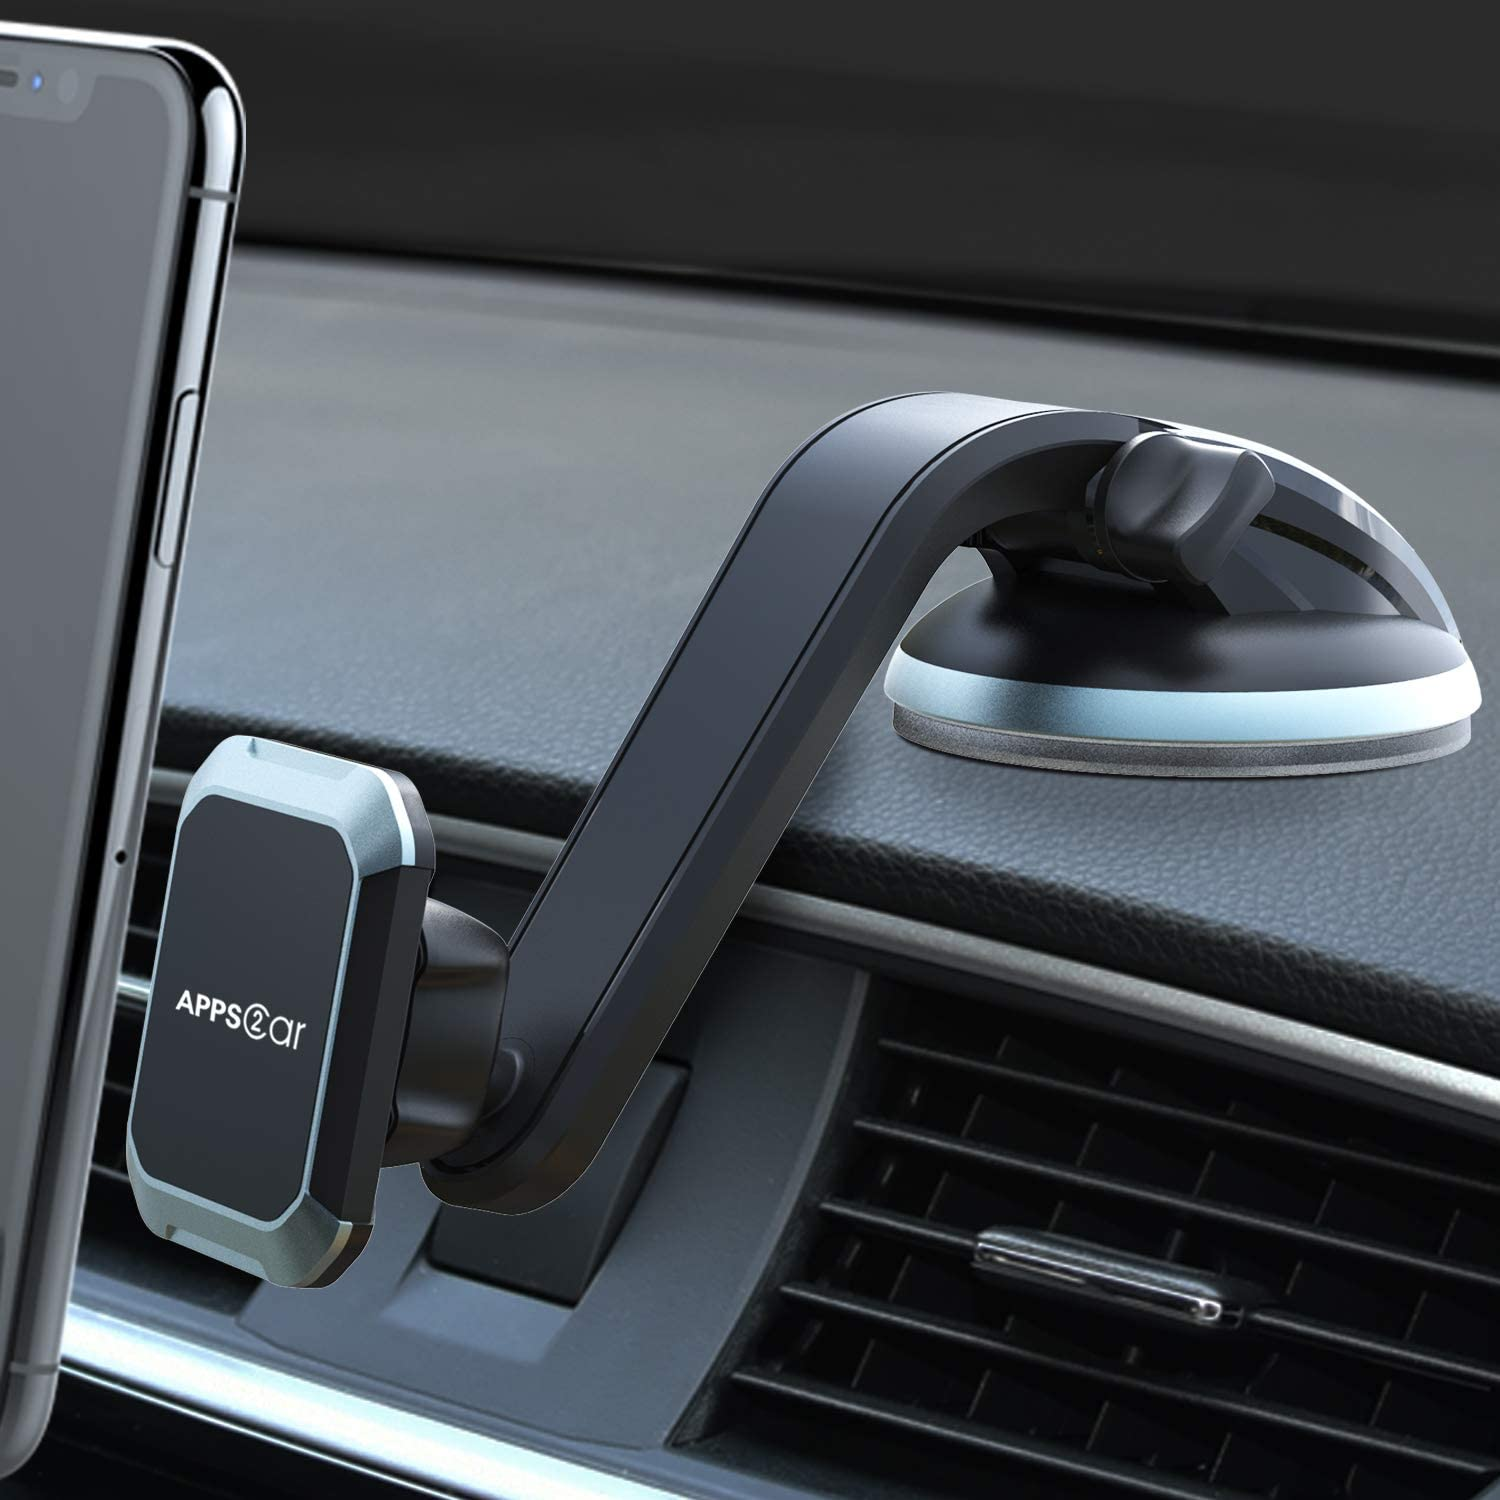 Magnetic Phone Mount APPS2Car Universal Magnetic Phone Car Mount Built-in Strong Magnets Windshield Dashboard Window Dash Magnetic Mount for Cell Phones